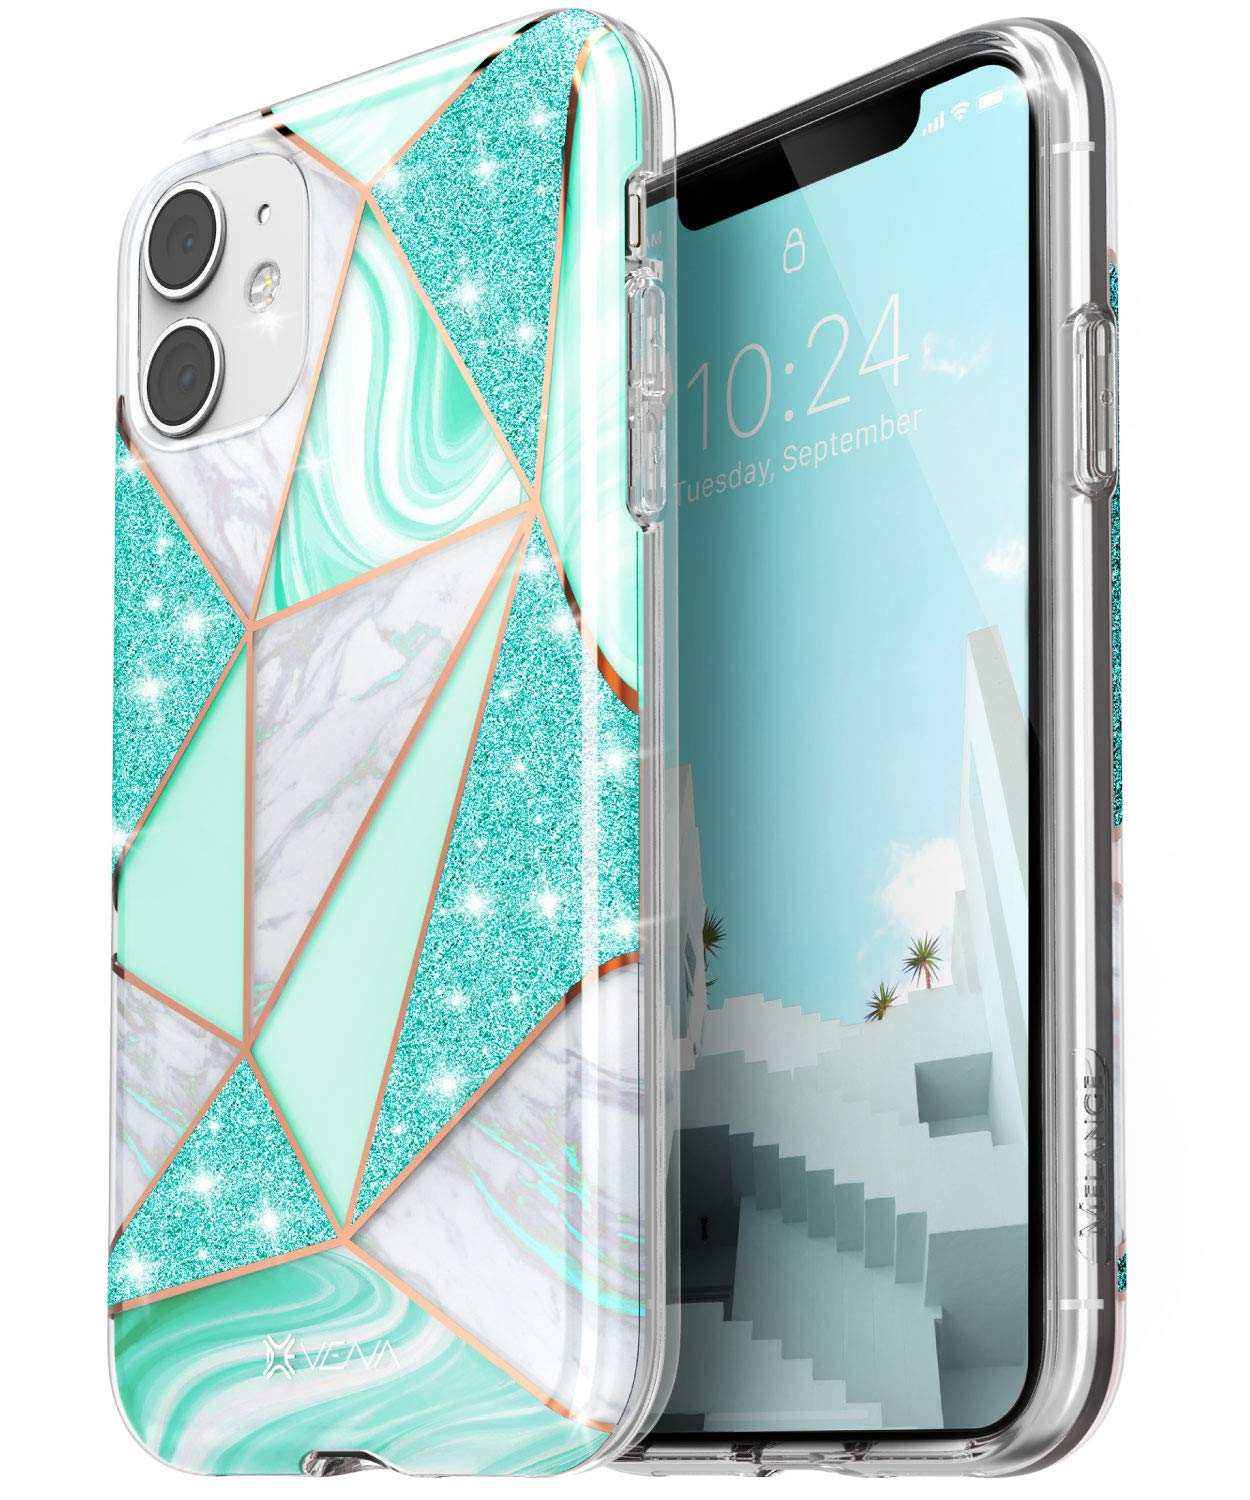 Vena iPhone 11 Marble Glitter Case, Melange Glitter Marble Bumper Protective Case, Designed for iPhone 11 (6.1 inches) - Marble Teal